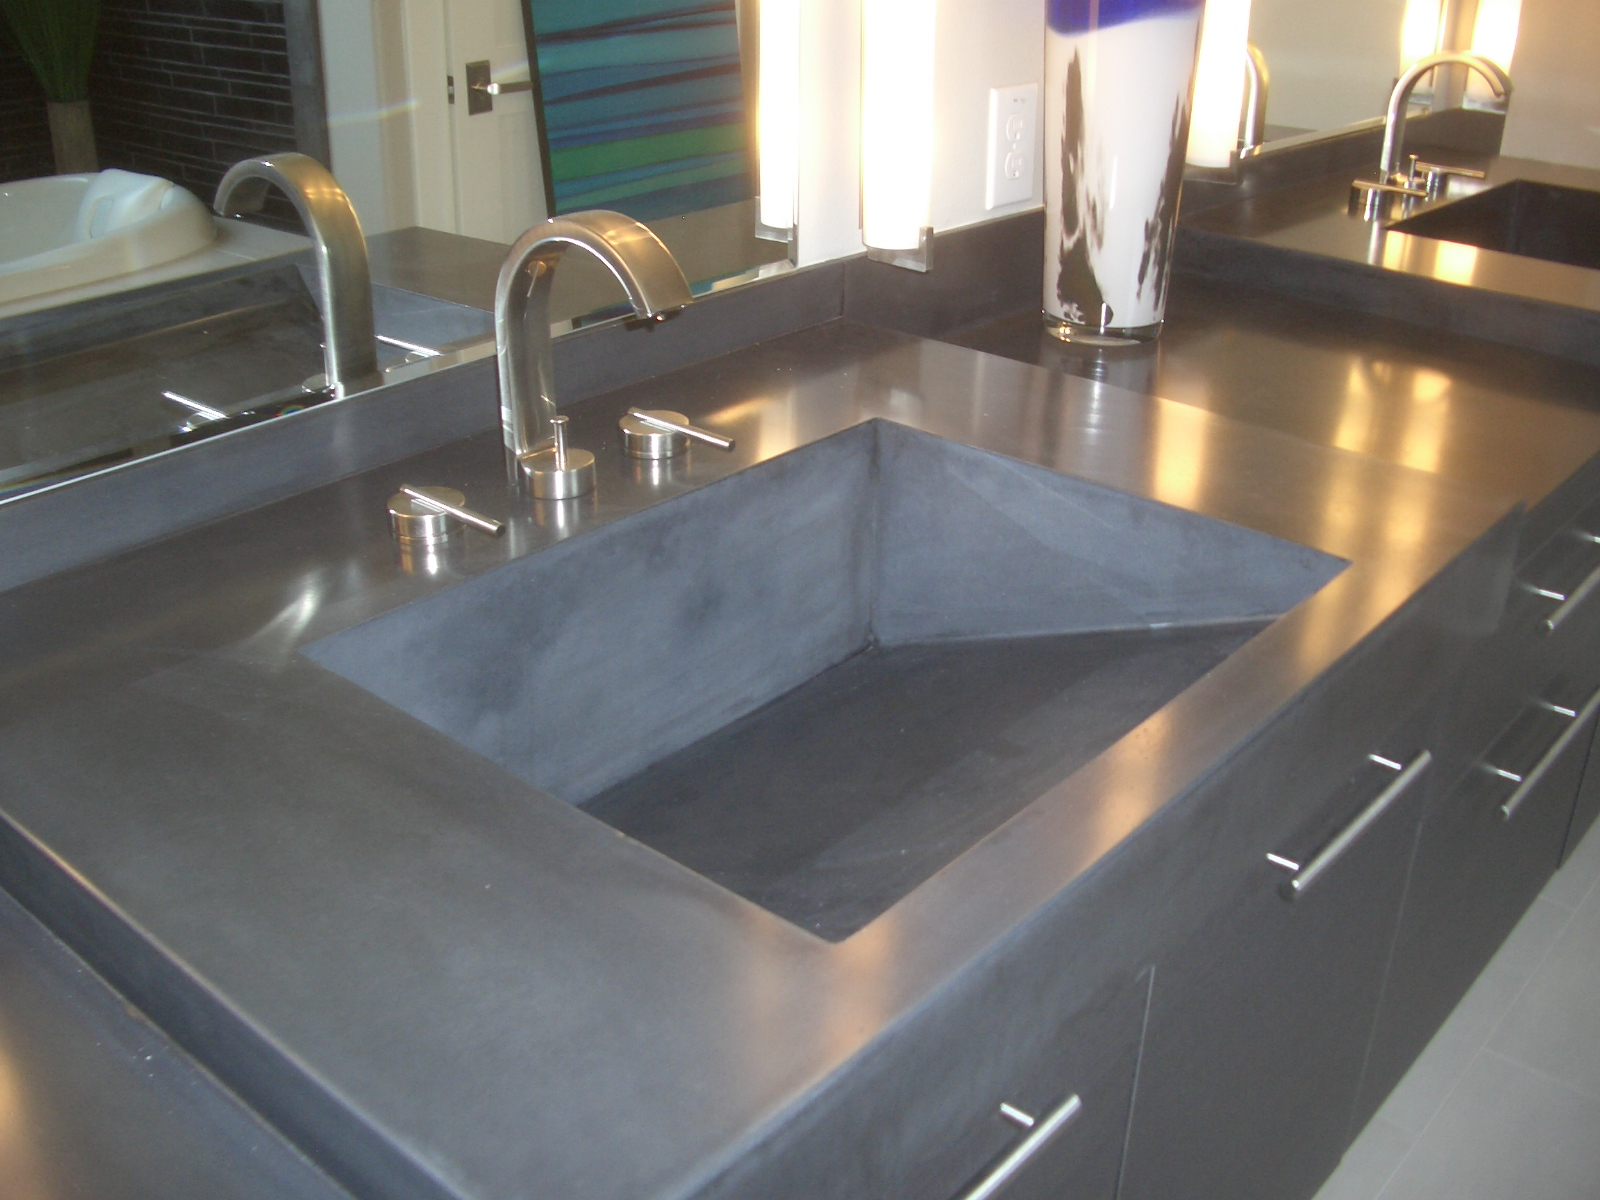 Are Stainless Steel Countertops Expensive Green Countertop Options House 43earth